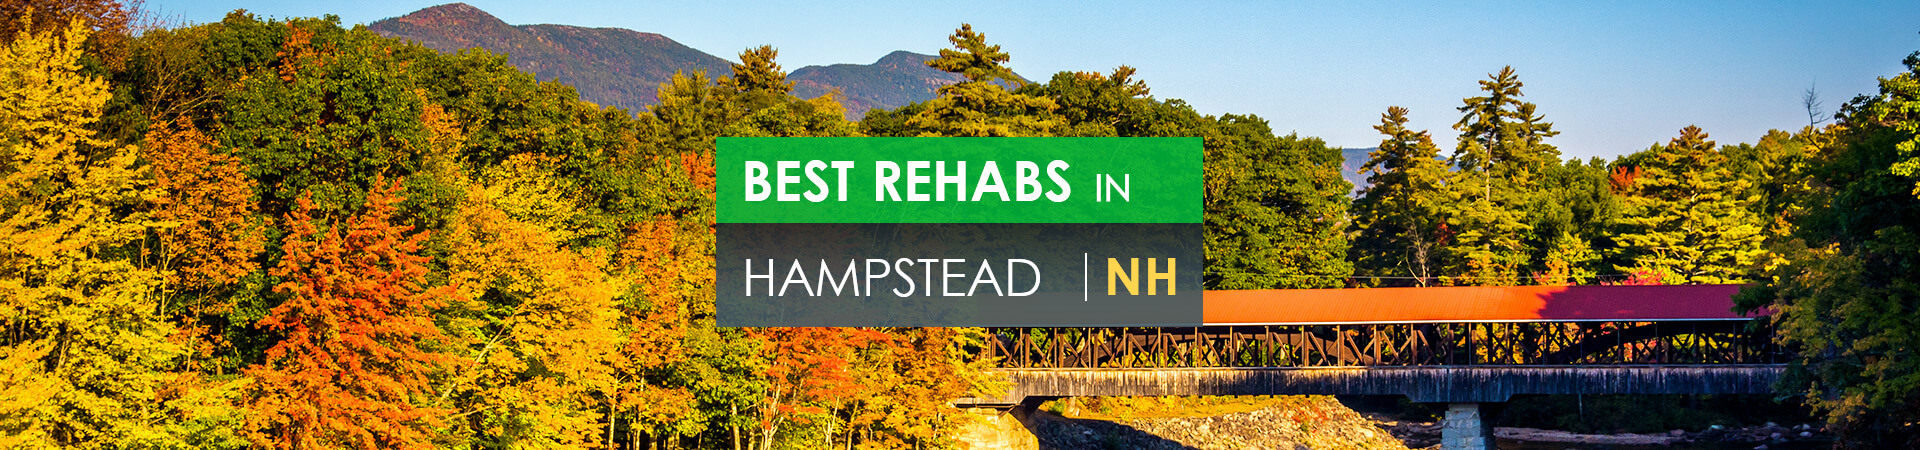 Best rehabs in Hampstead, NH